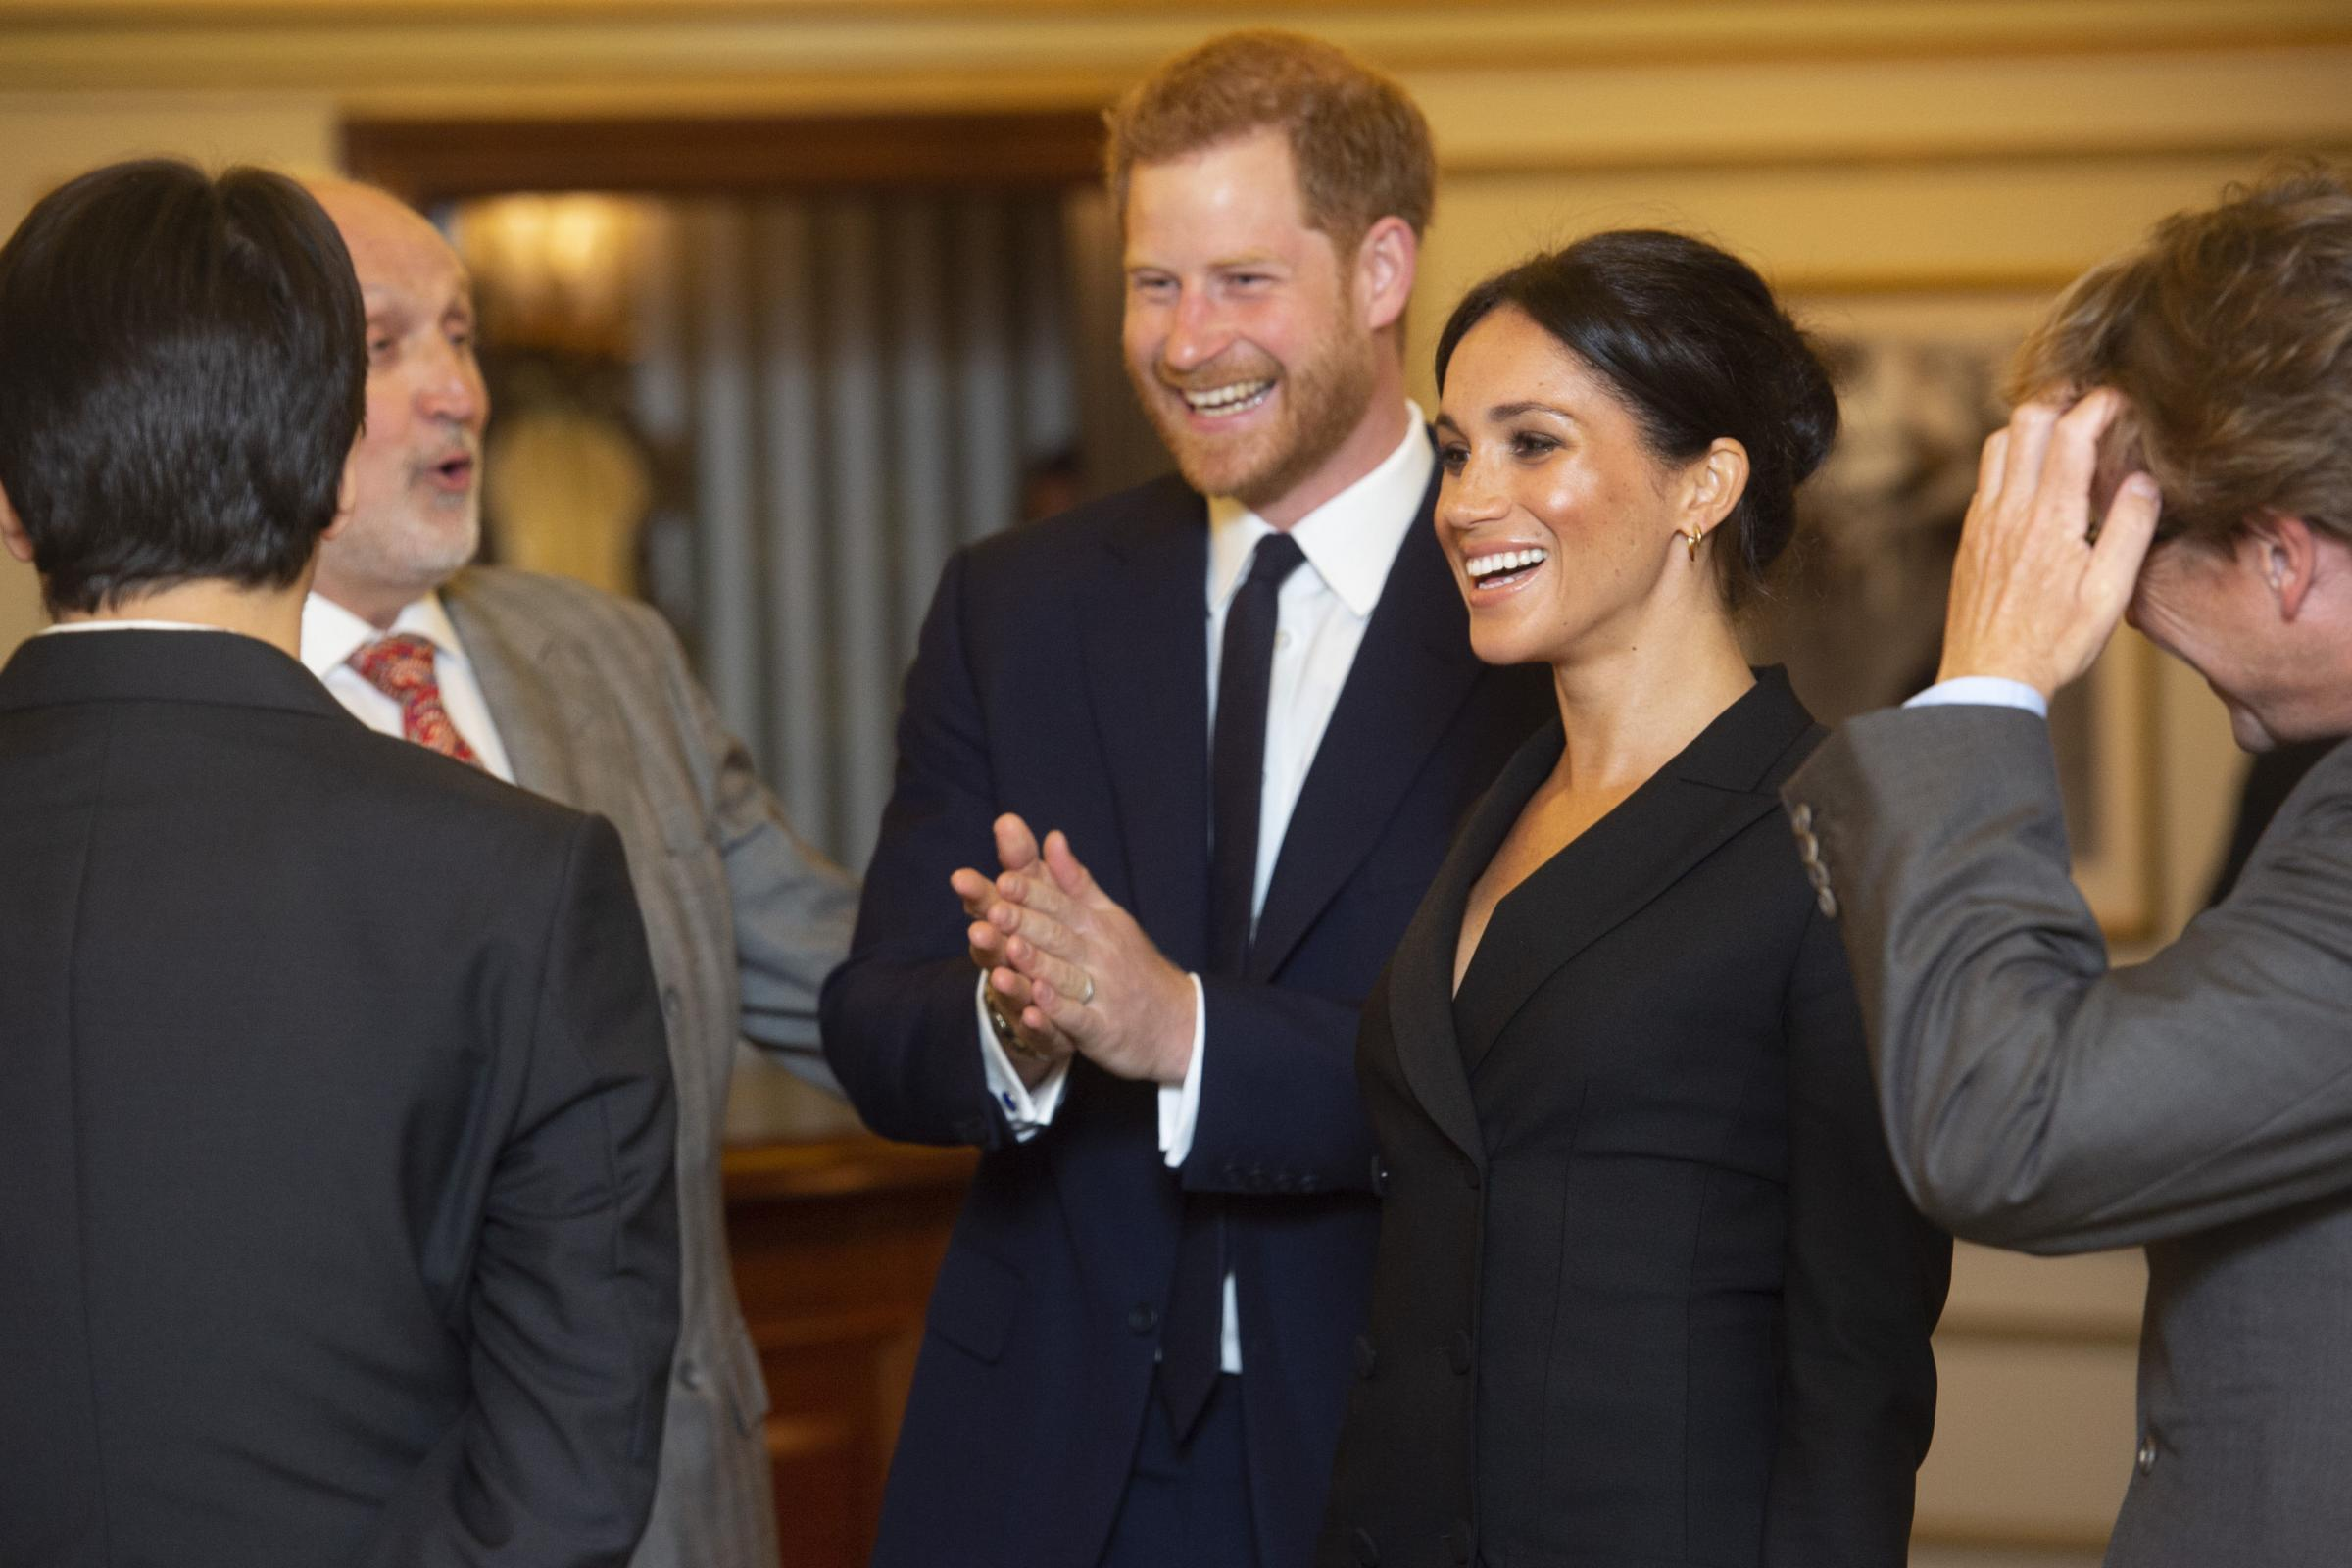 The Duchess of Sussex reveals the surreal moment she chose her wedding tiara